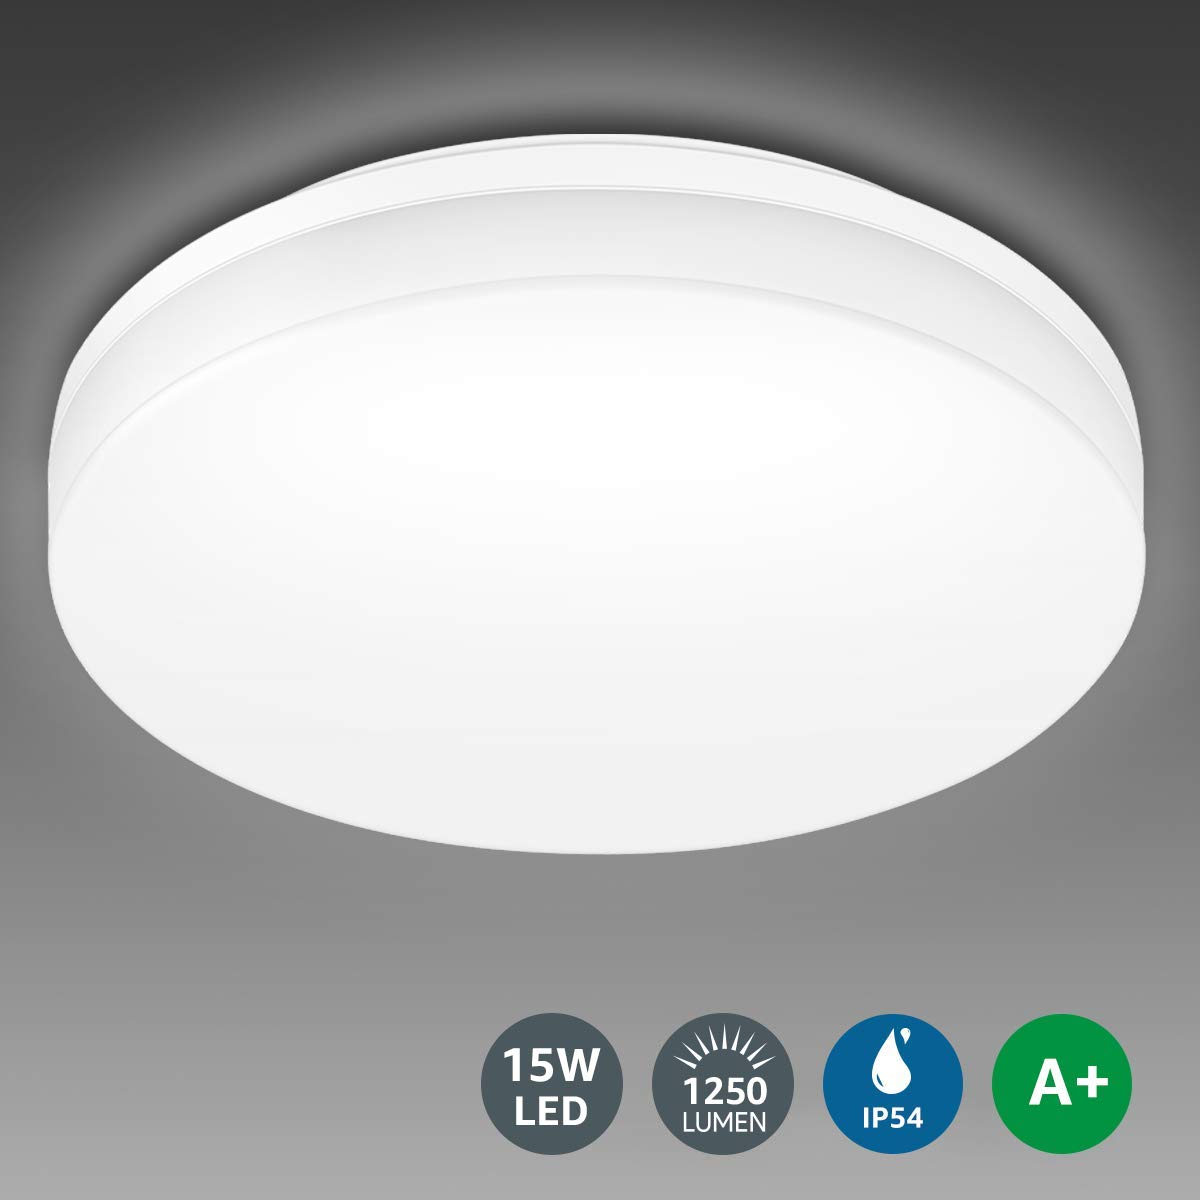 LE Lámpara LED de Techo LED de Baño 15W Plafón LED Impermeable IP54 Super Brillante 1250lm 5000k Blanco Frío Luz de Techo Ideal para Sala de Estar, ...